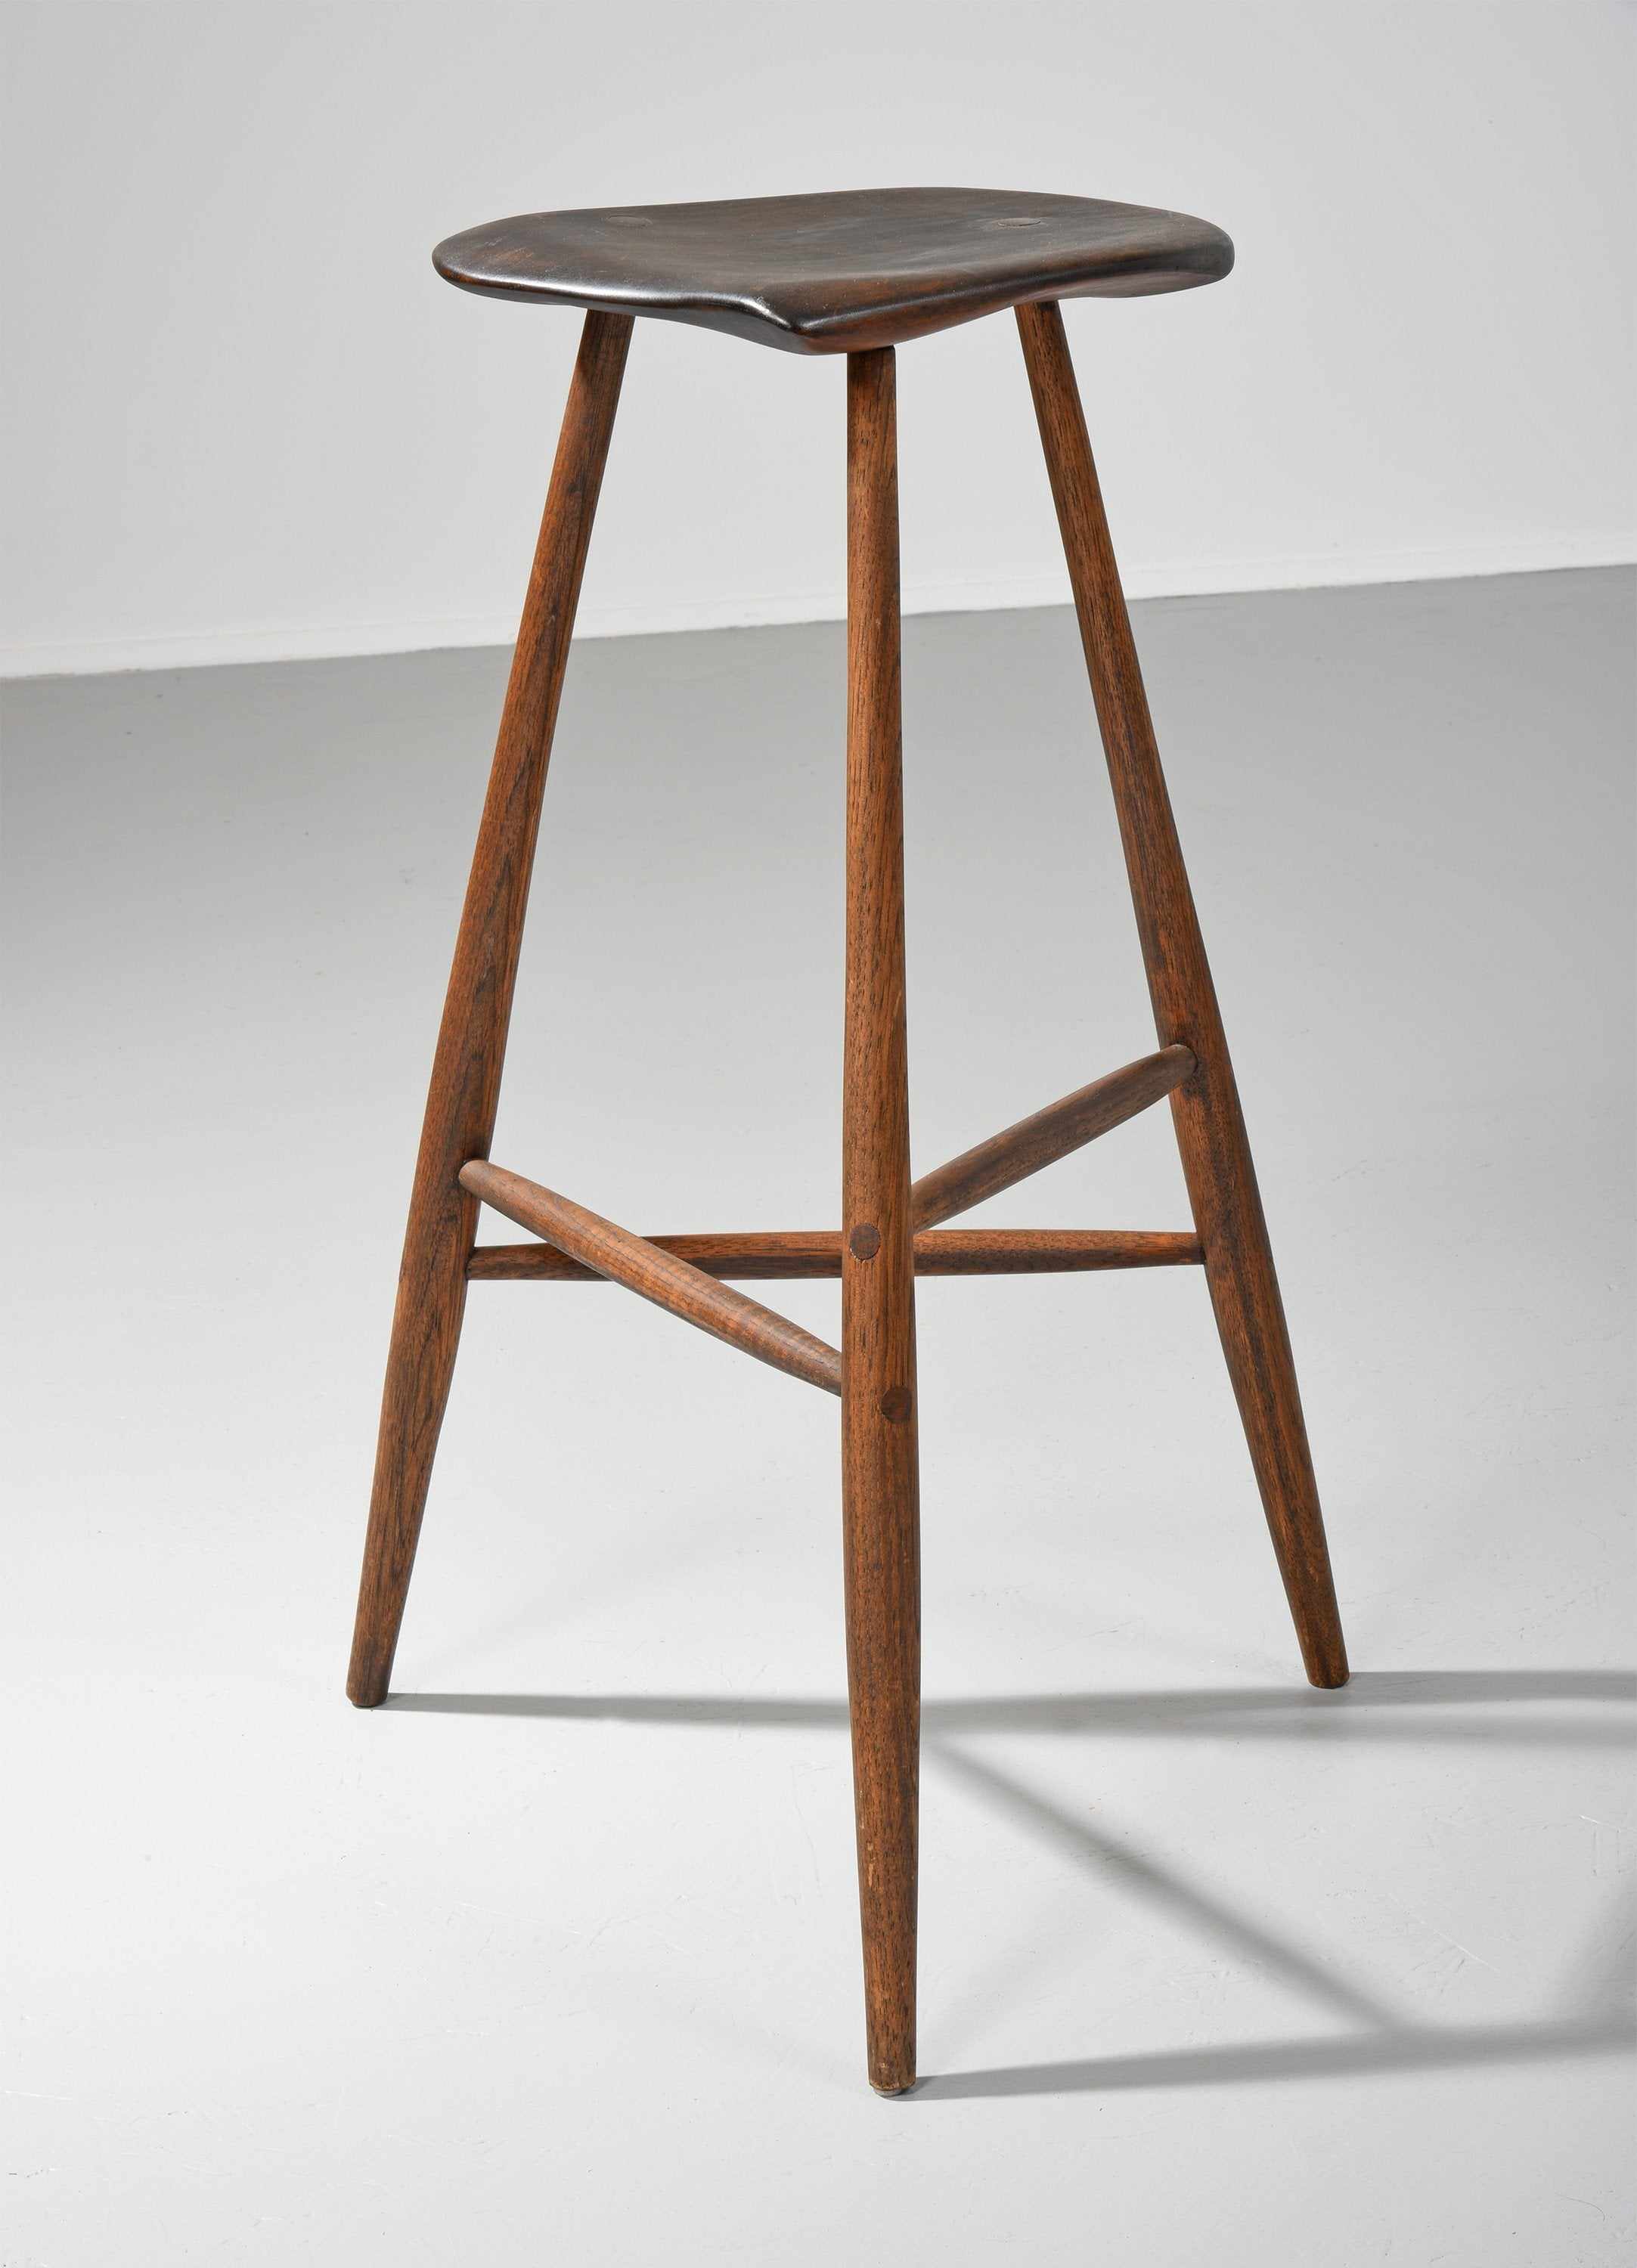 Wharton Esherick Carved Hickory & Walnut Stool, 1959